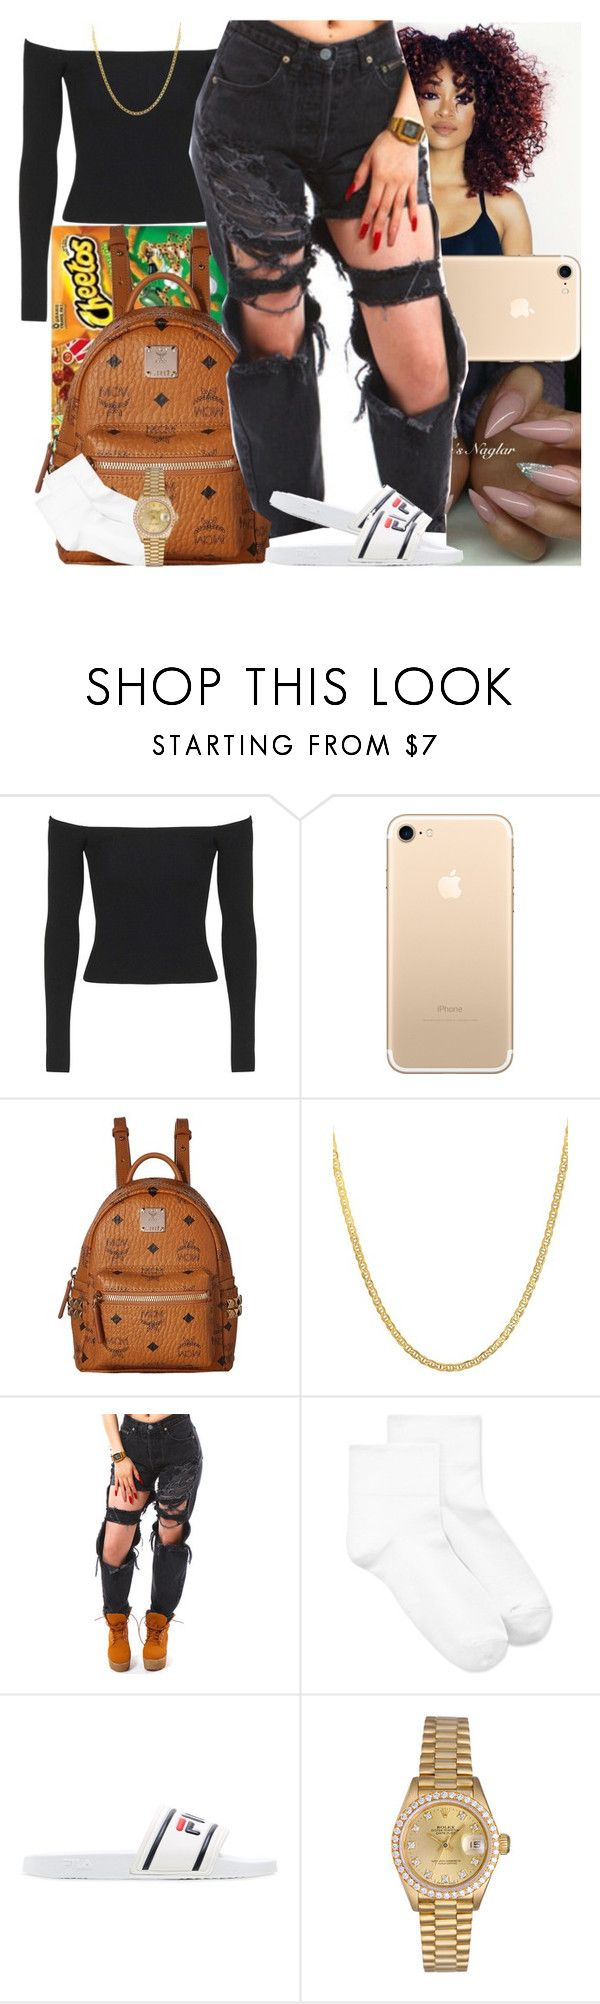 """Untitled #1006"" by msixo ❤ liked on Polyvore featuring Topshop, MCM, Lord & Taylor, Hue, Fila and Rolex"